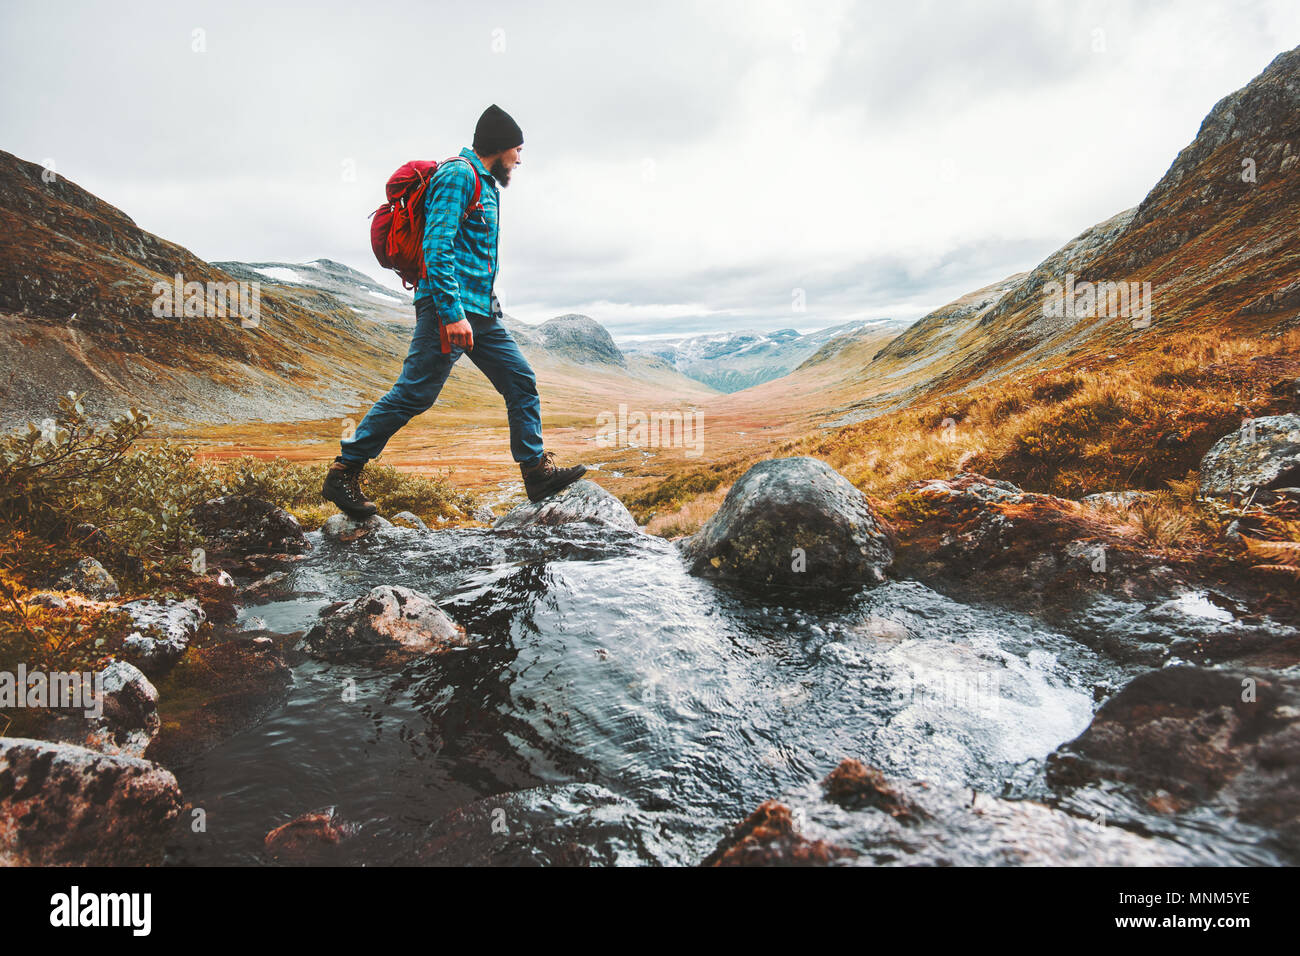 Man solo traveling backpacker hiking in scandinavian mountains active healthy lifestyle adventure journey vacations - Stock Image